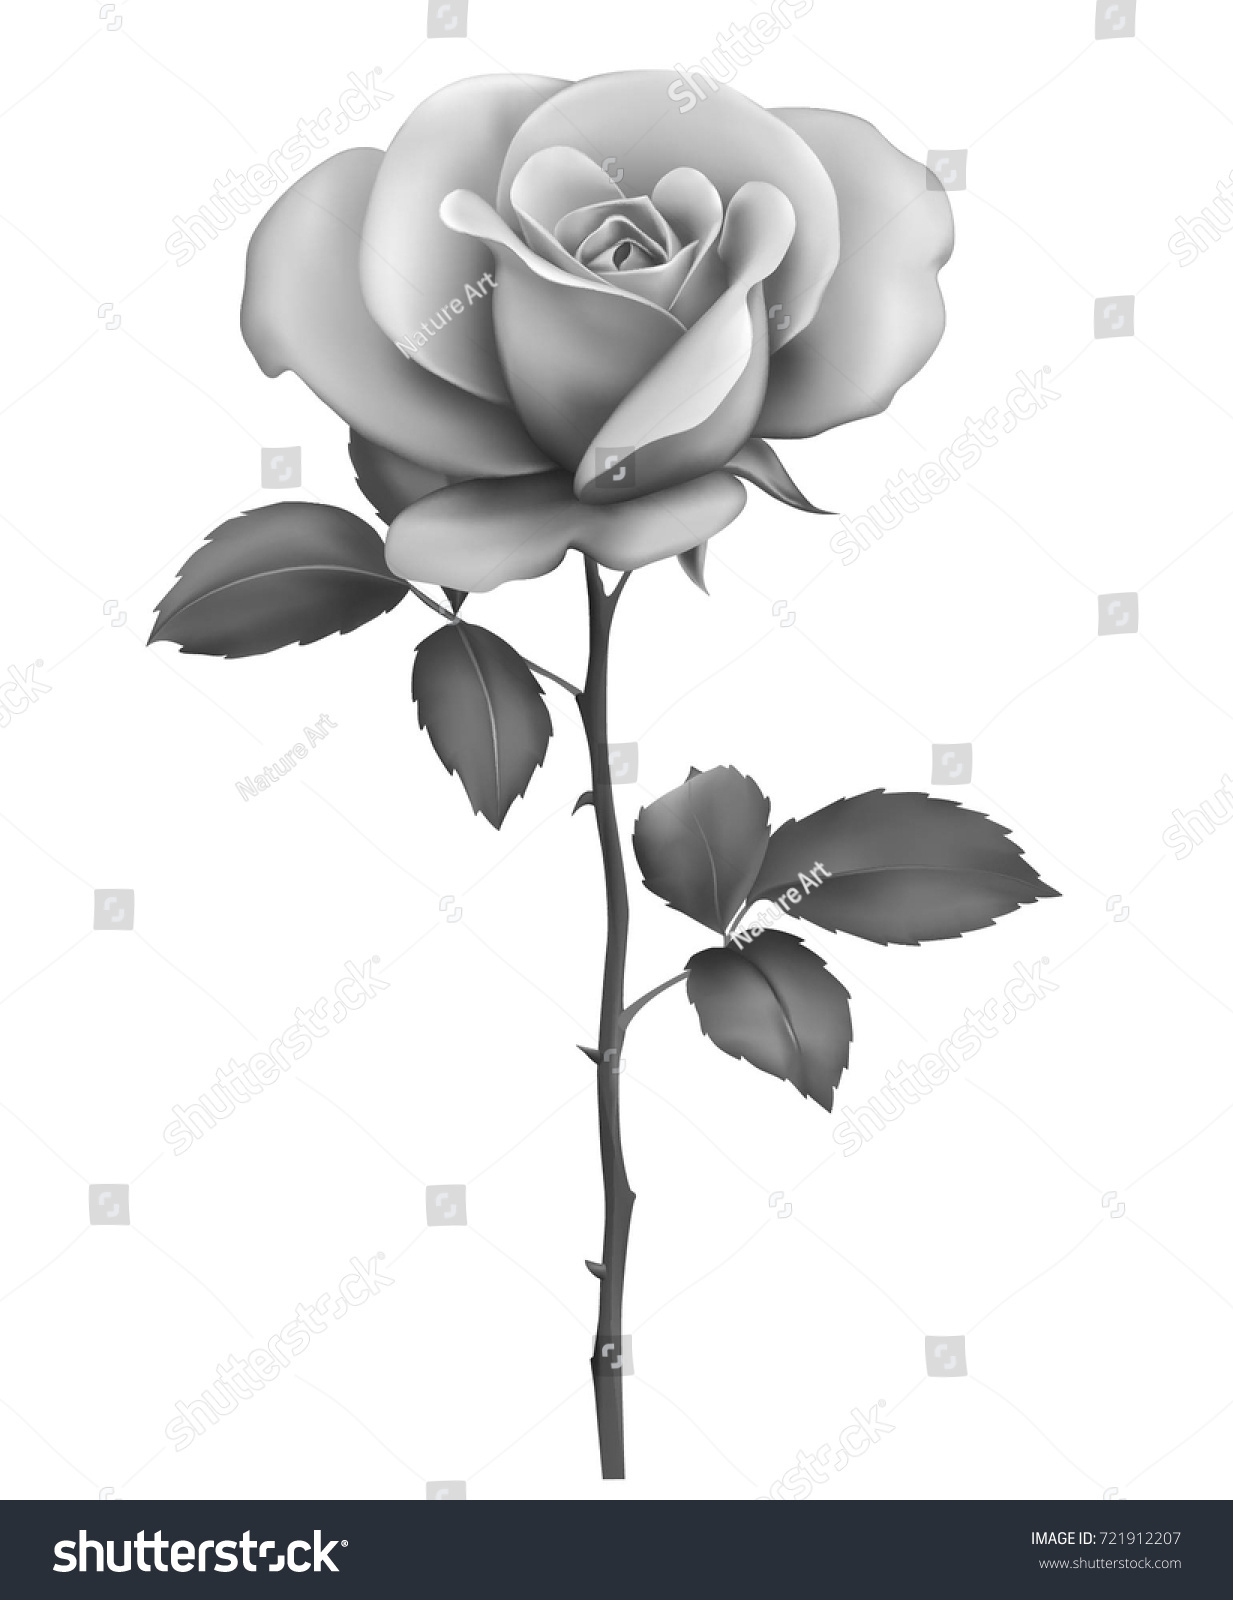 Beautiful sexy black and white rose with stem and leaves isolated on white background photo realistic gradient mesh vector illustration in shades of grey